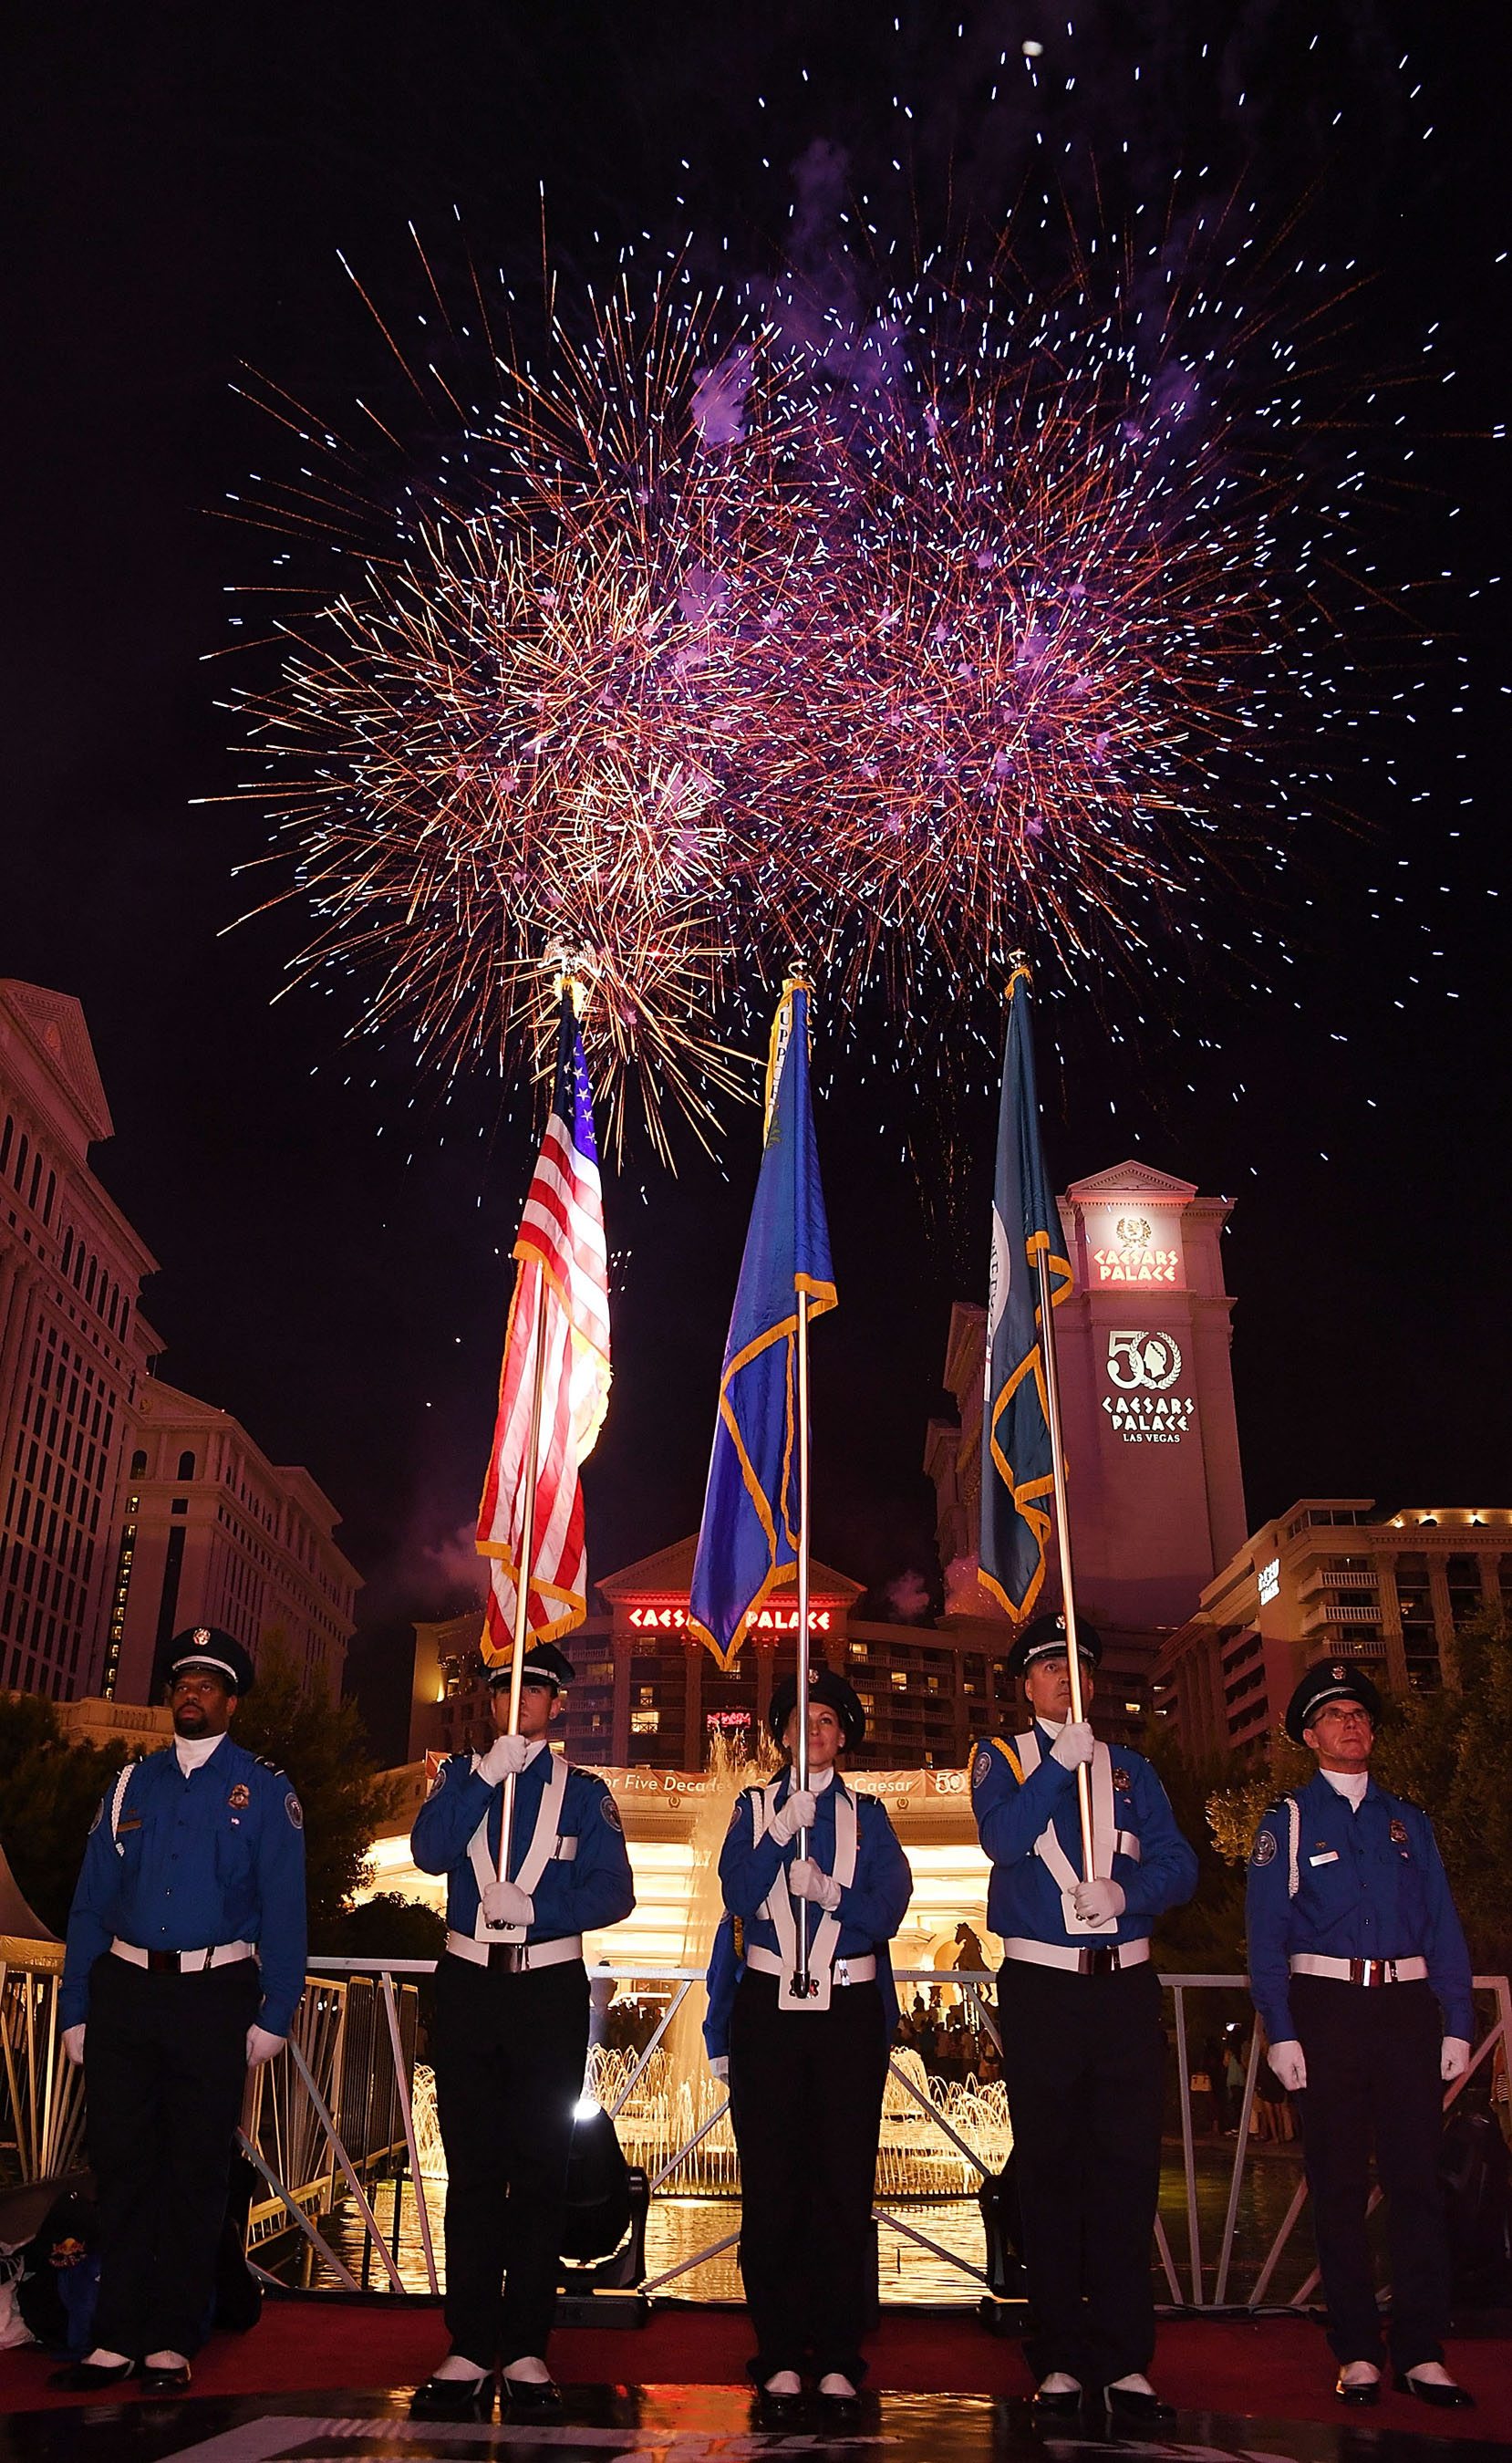 The 50th Anniversary celebration of Caesars Palace continues with an Independence Day Weekend fireworks extravaganza. Photo Credit: Denise Truscello/Getty Images